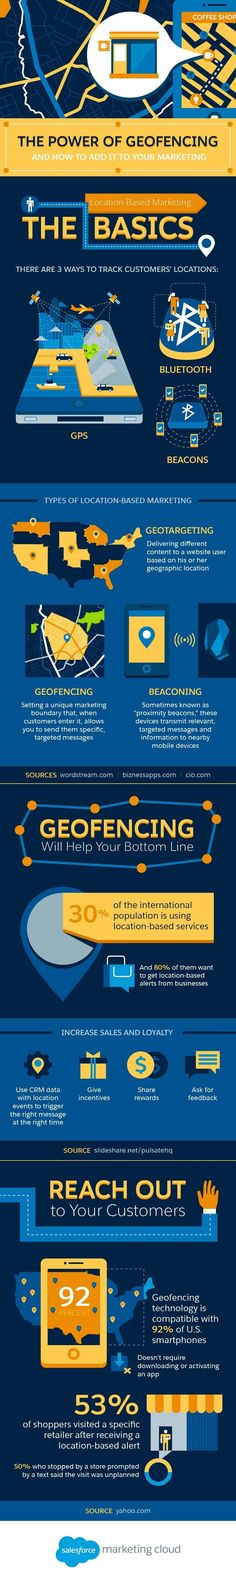 The Power of Geofencing and How to Add It to Your Marketing   Social Media Today